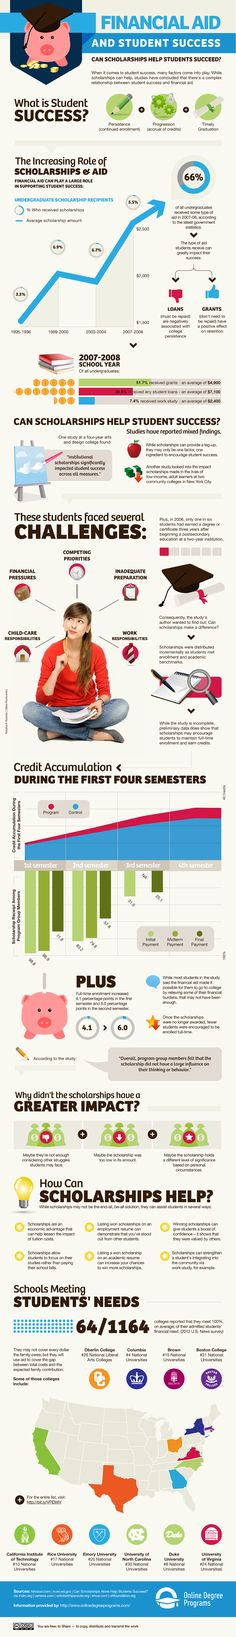 Infographic: Financial Aid & Student Success - jodi@collegefinancialaidadvisors.com - College Financial Aid Advisors Mail